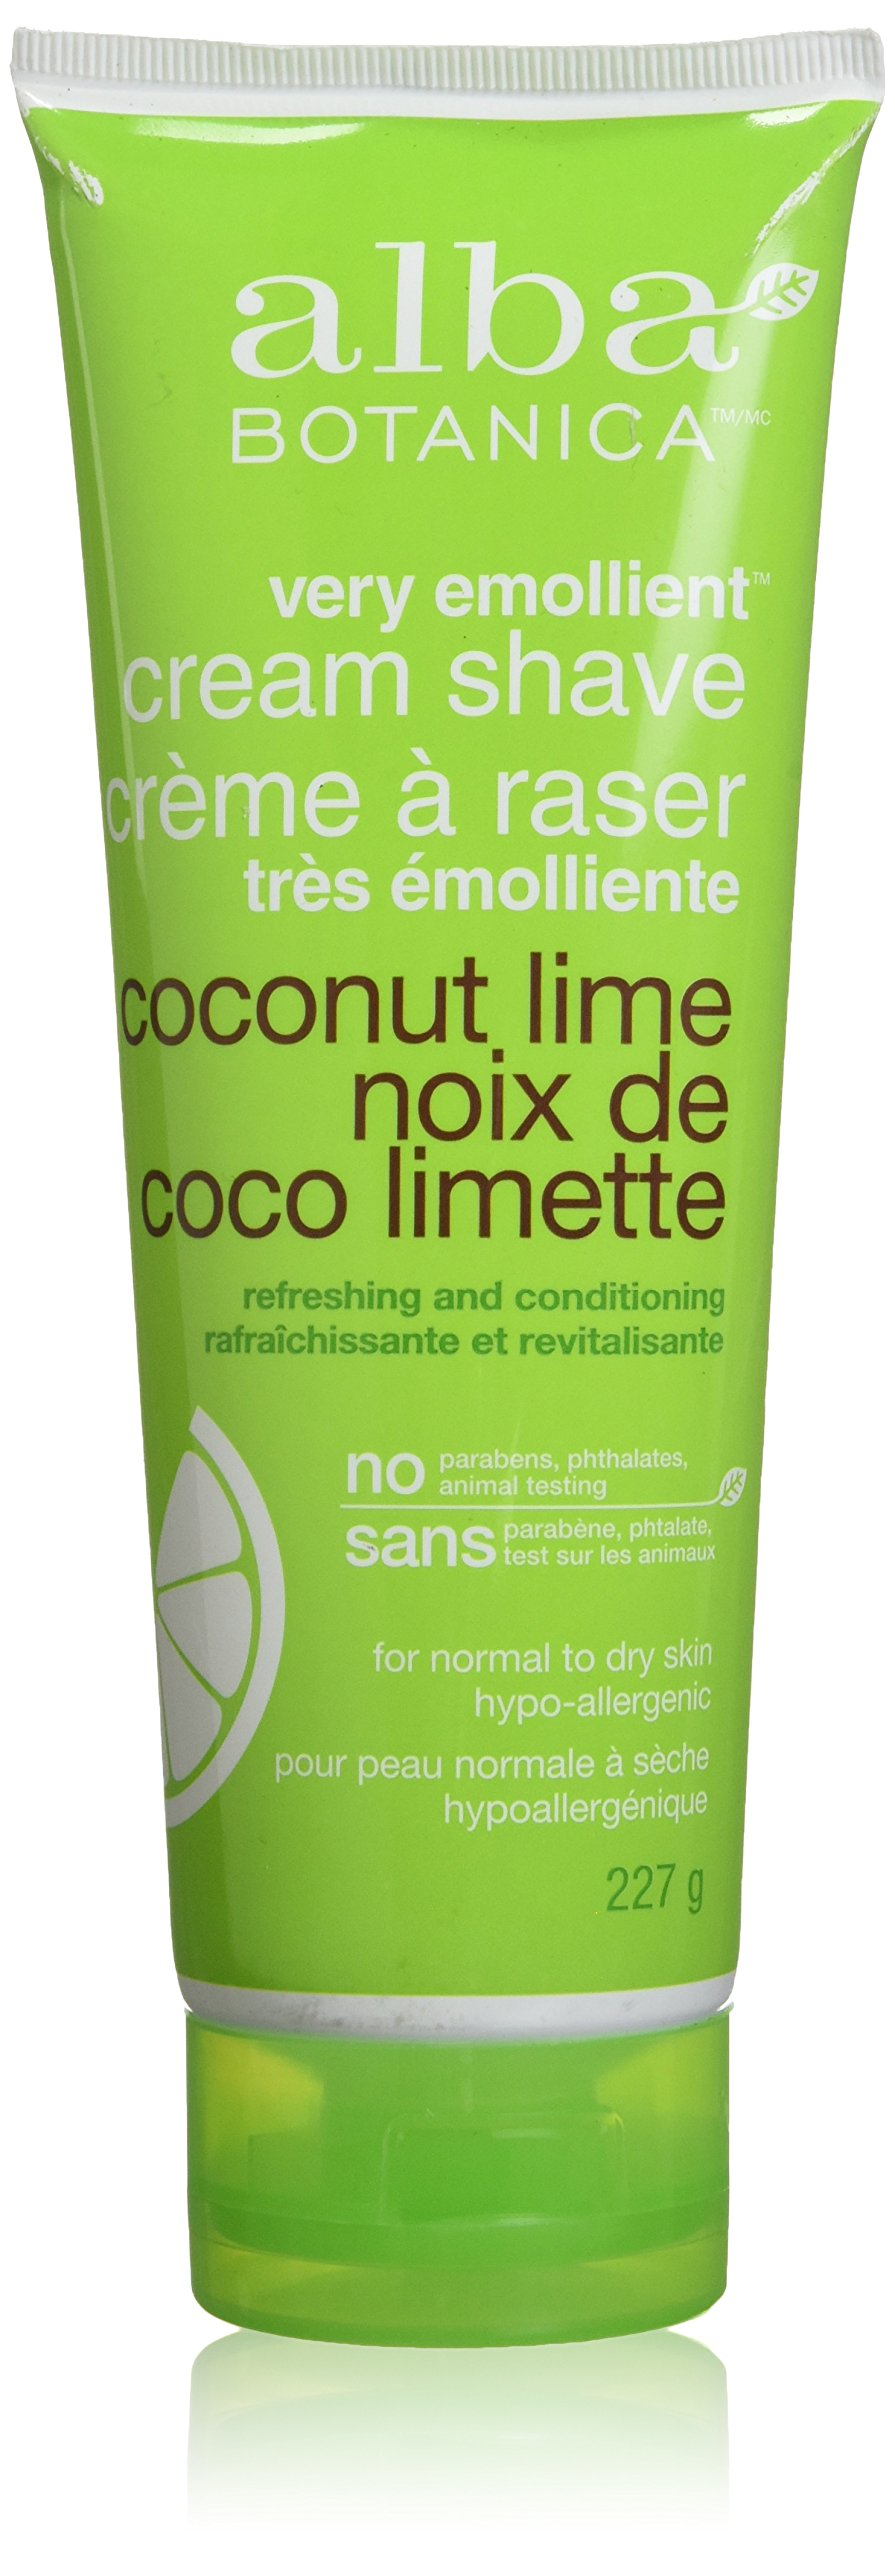 Alba Botanica Coconut Lime Very Emollient Cream Shave, 8 Ounce Bottles (Pack of 4)